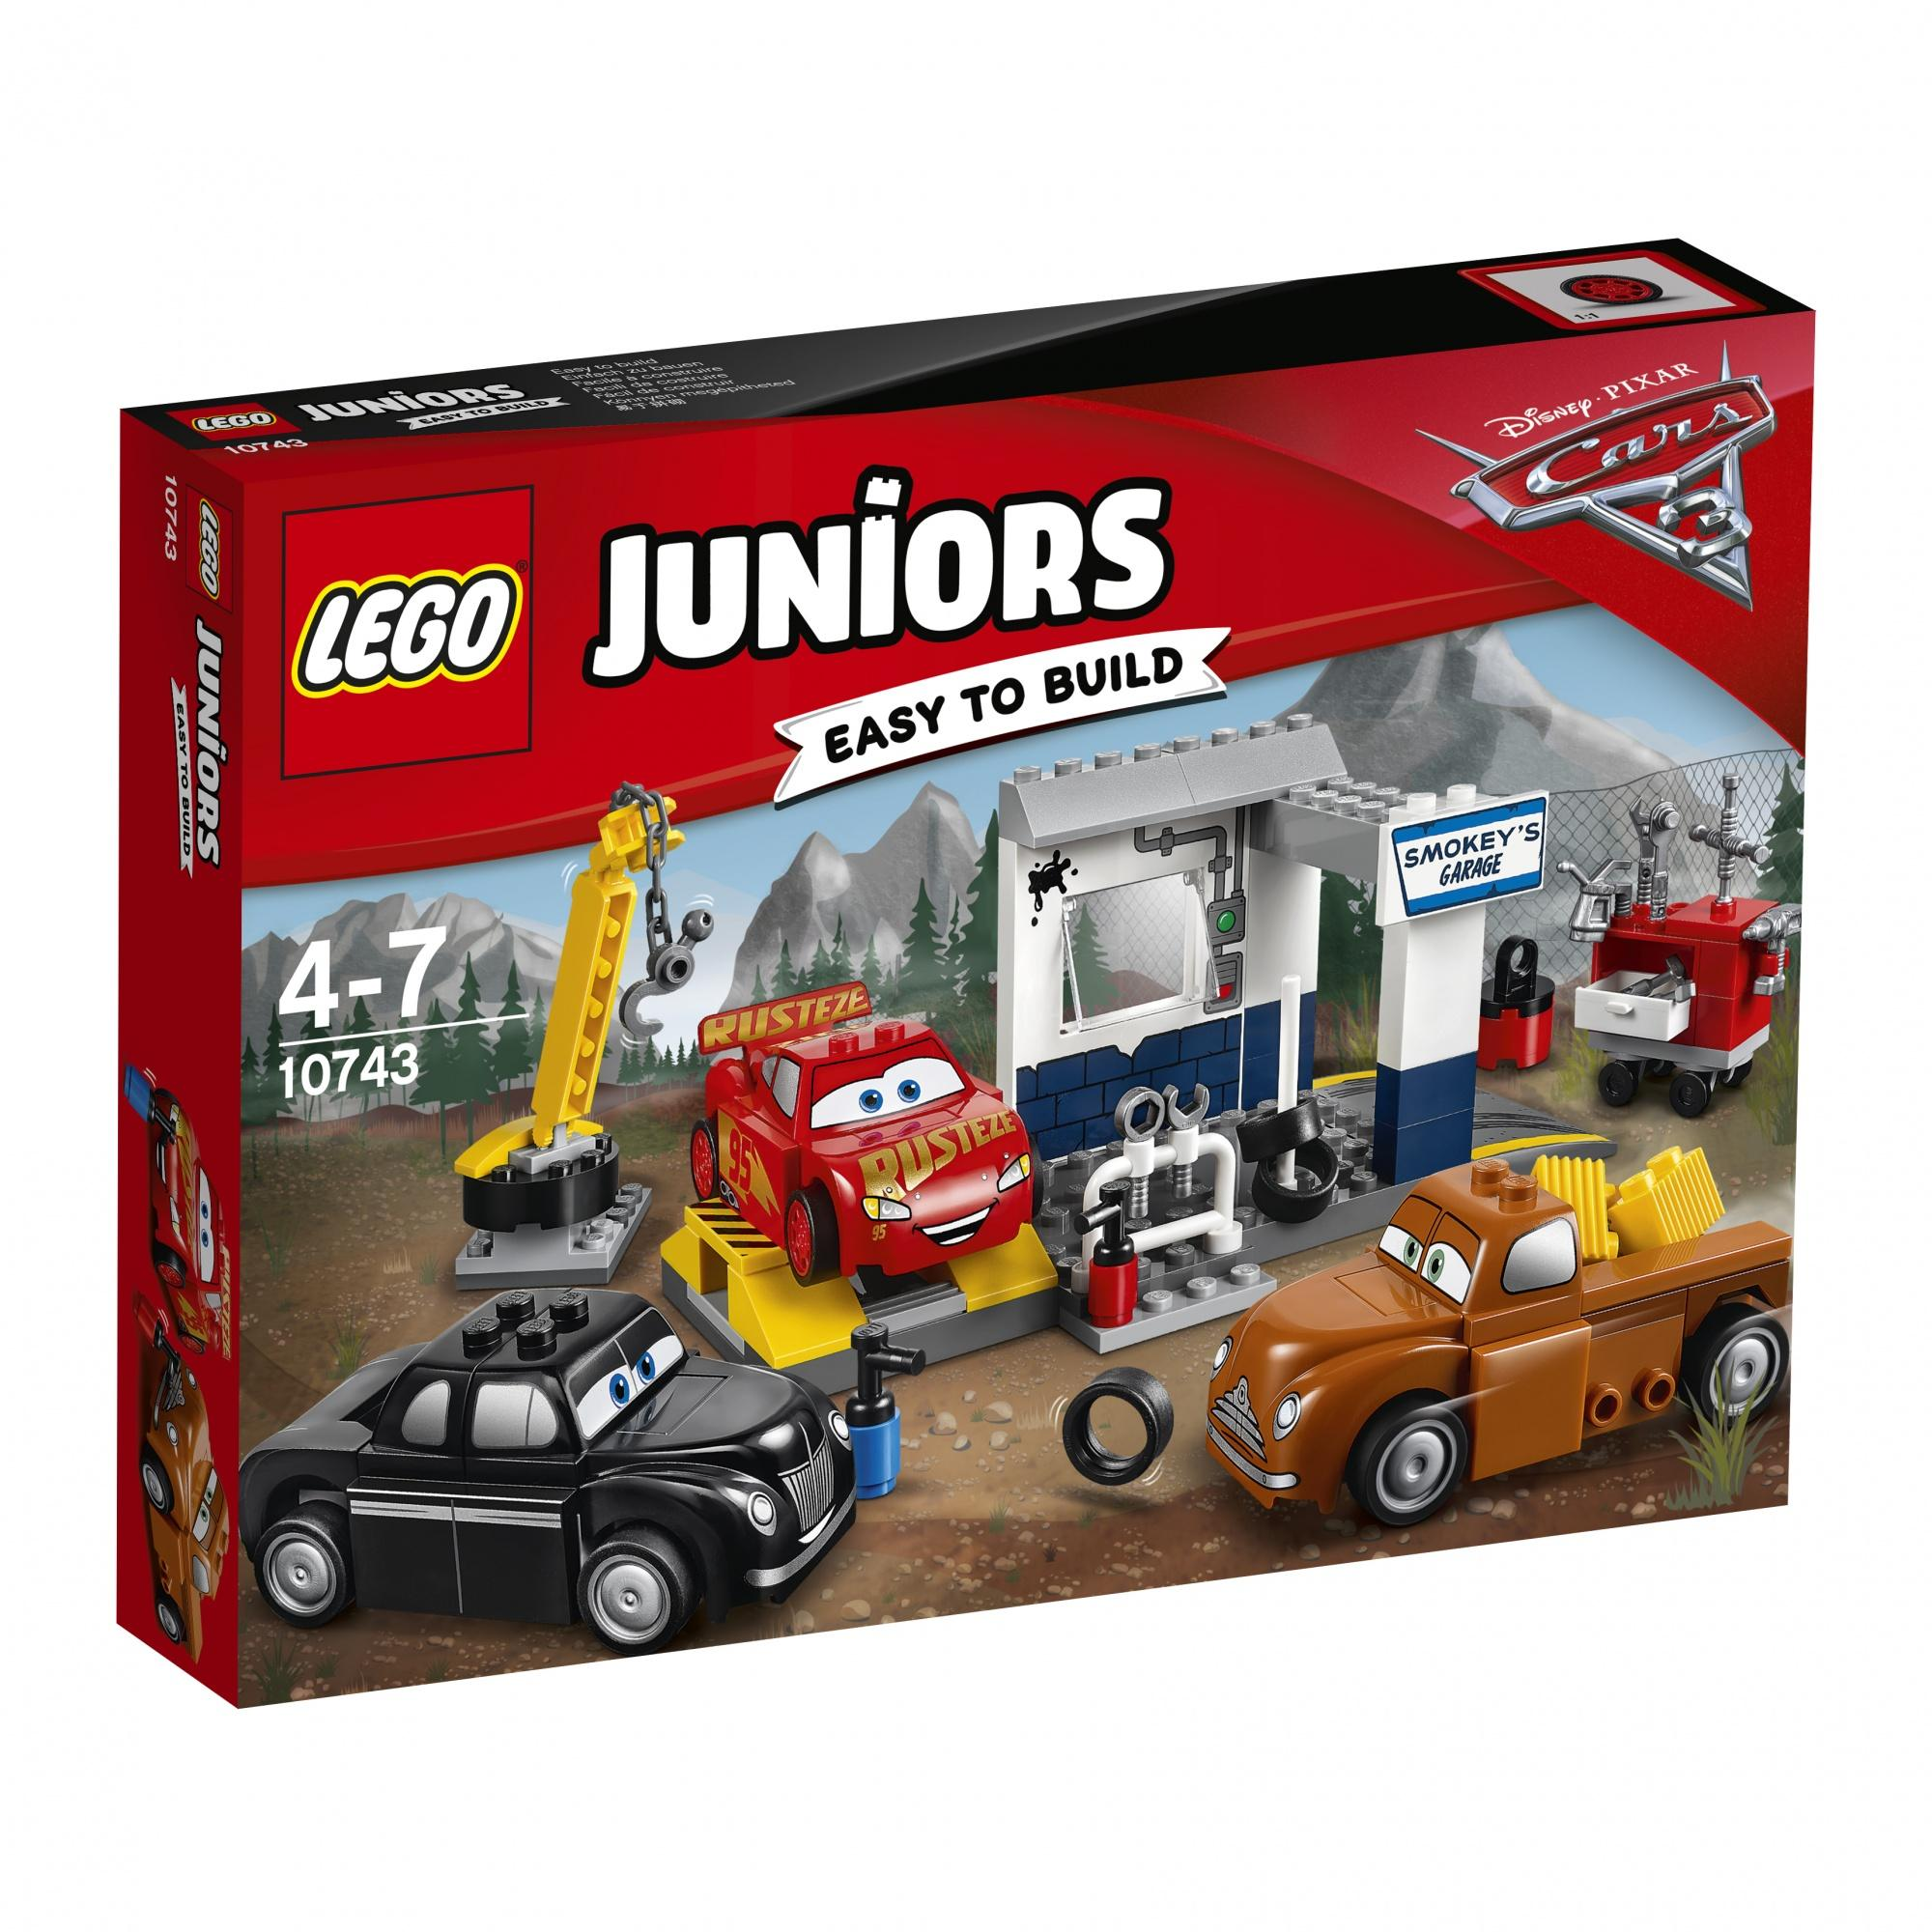 Lego Juniors Smokey's Garage